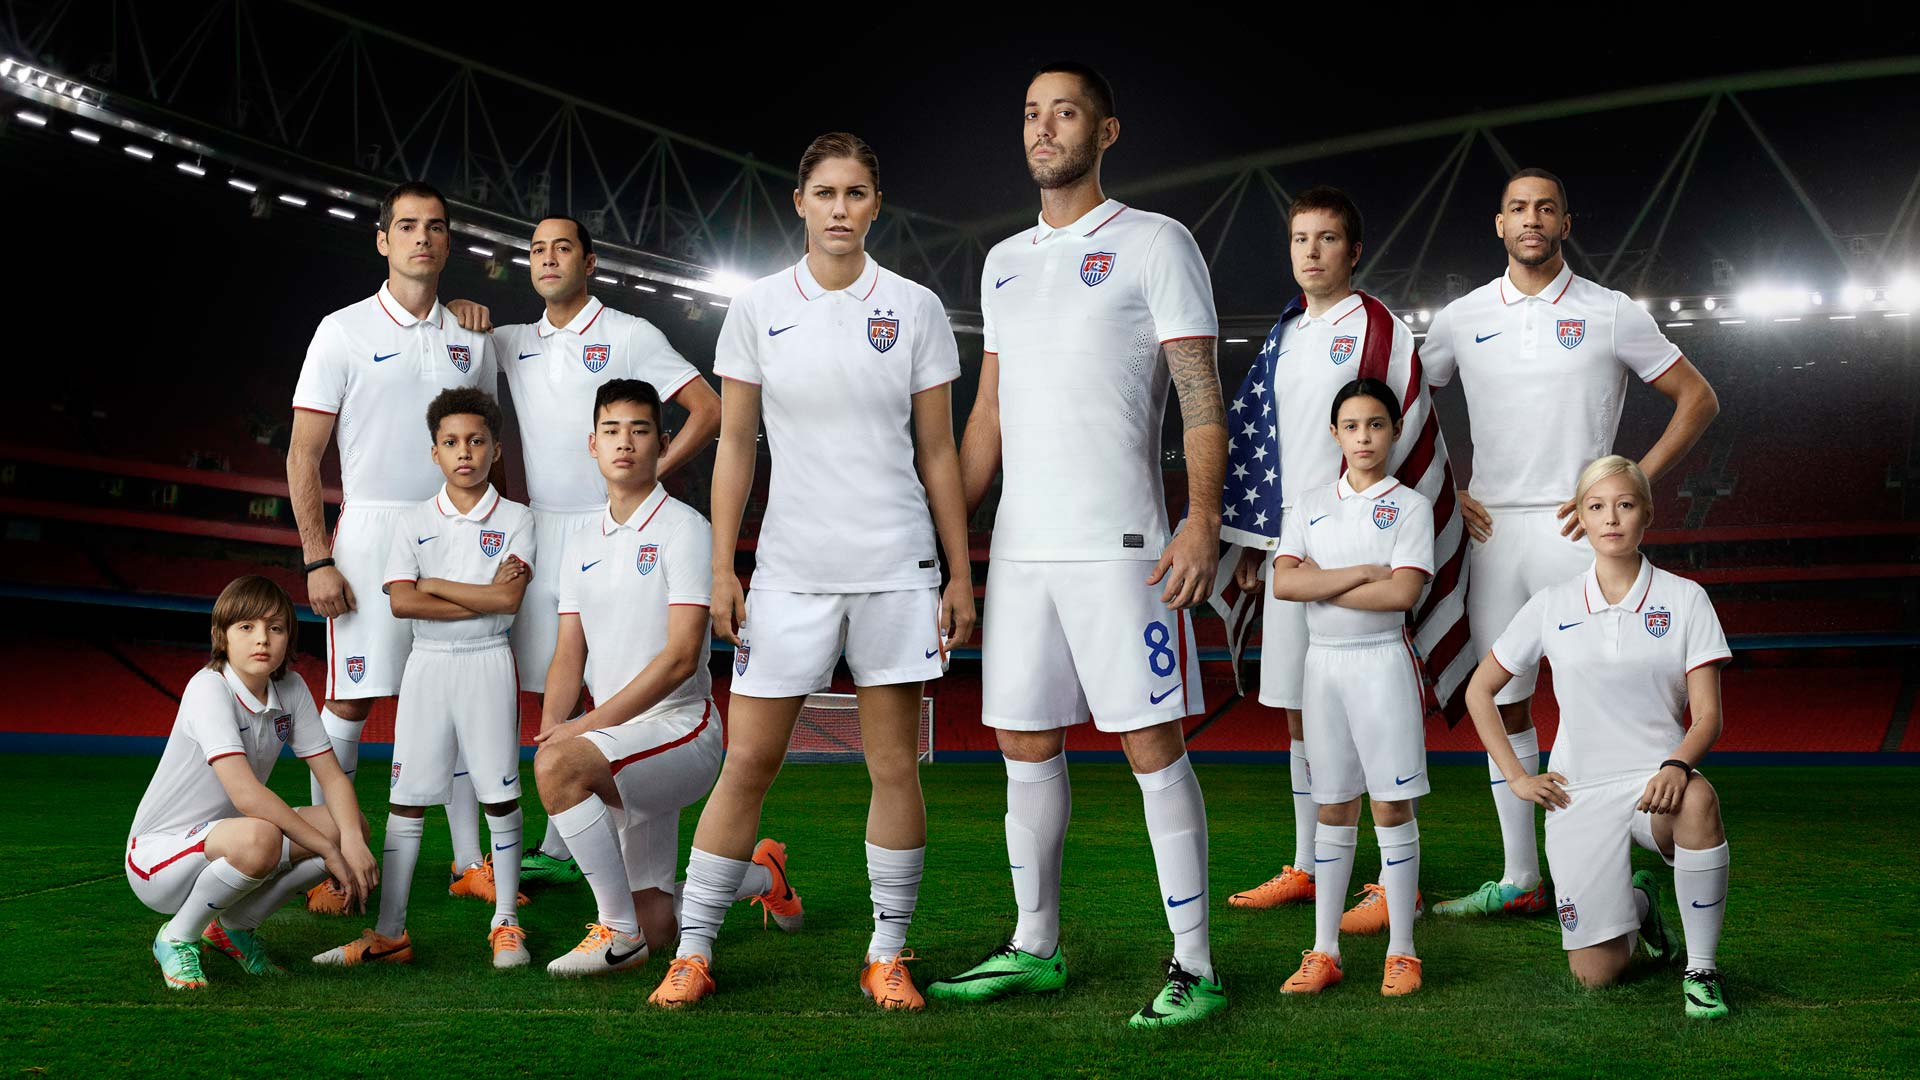 e13d4b4c3ff US Soccer gets new home kit for 2014